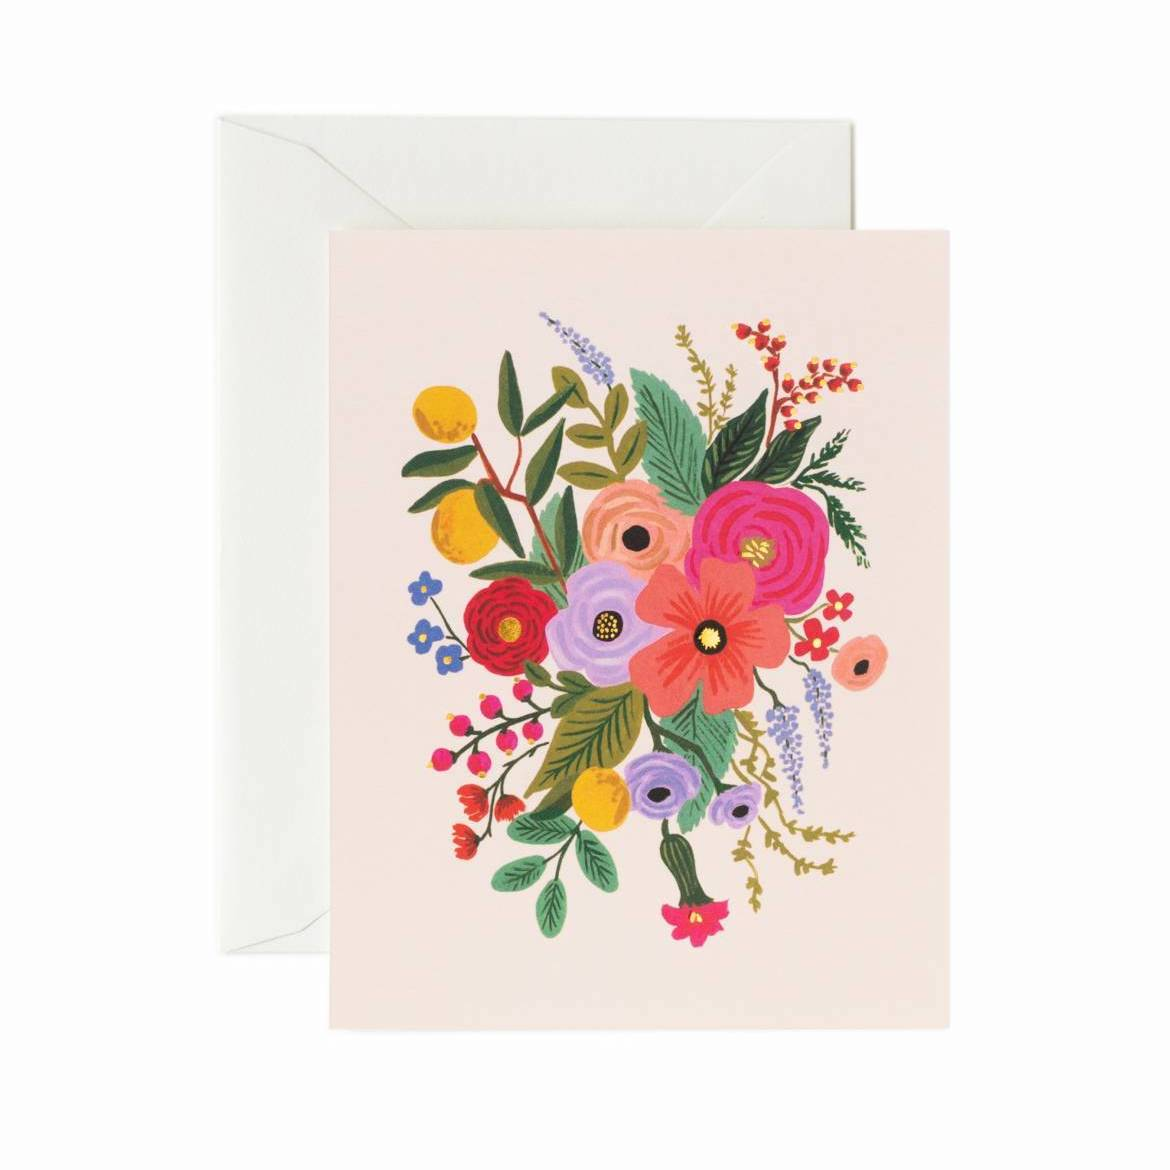 Garden Party Card Set - Blush Card - Rifle Paper Co.